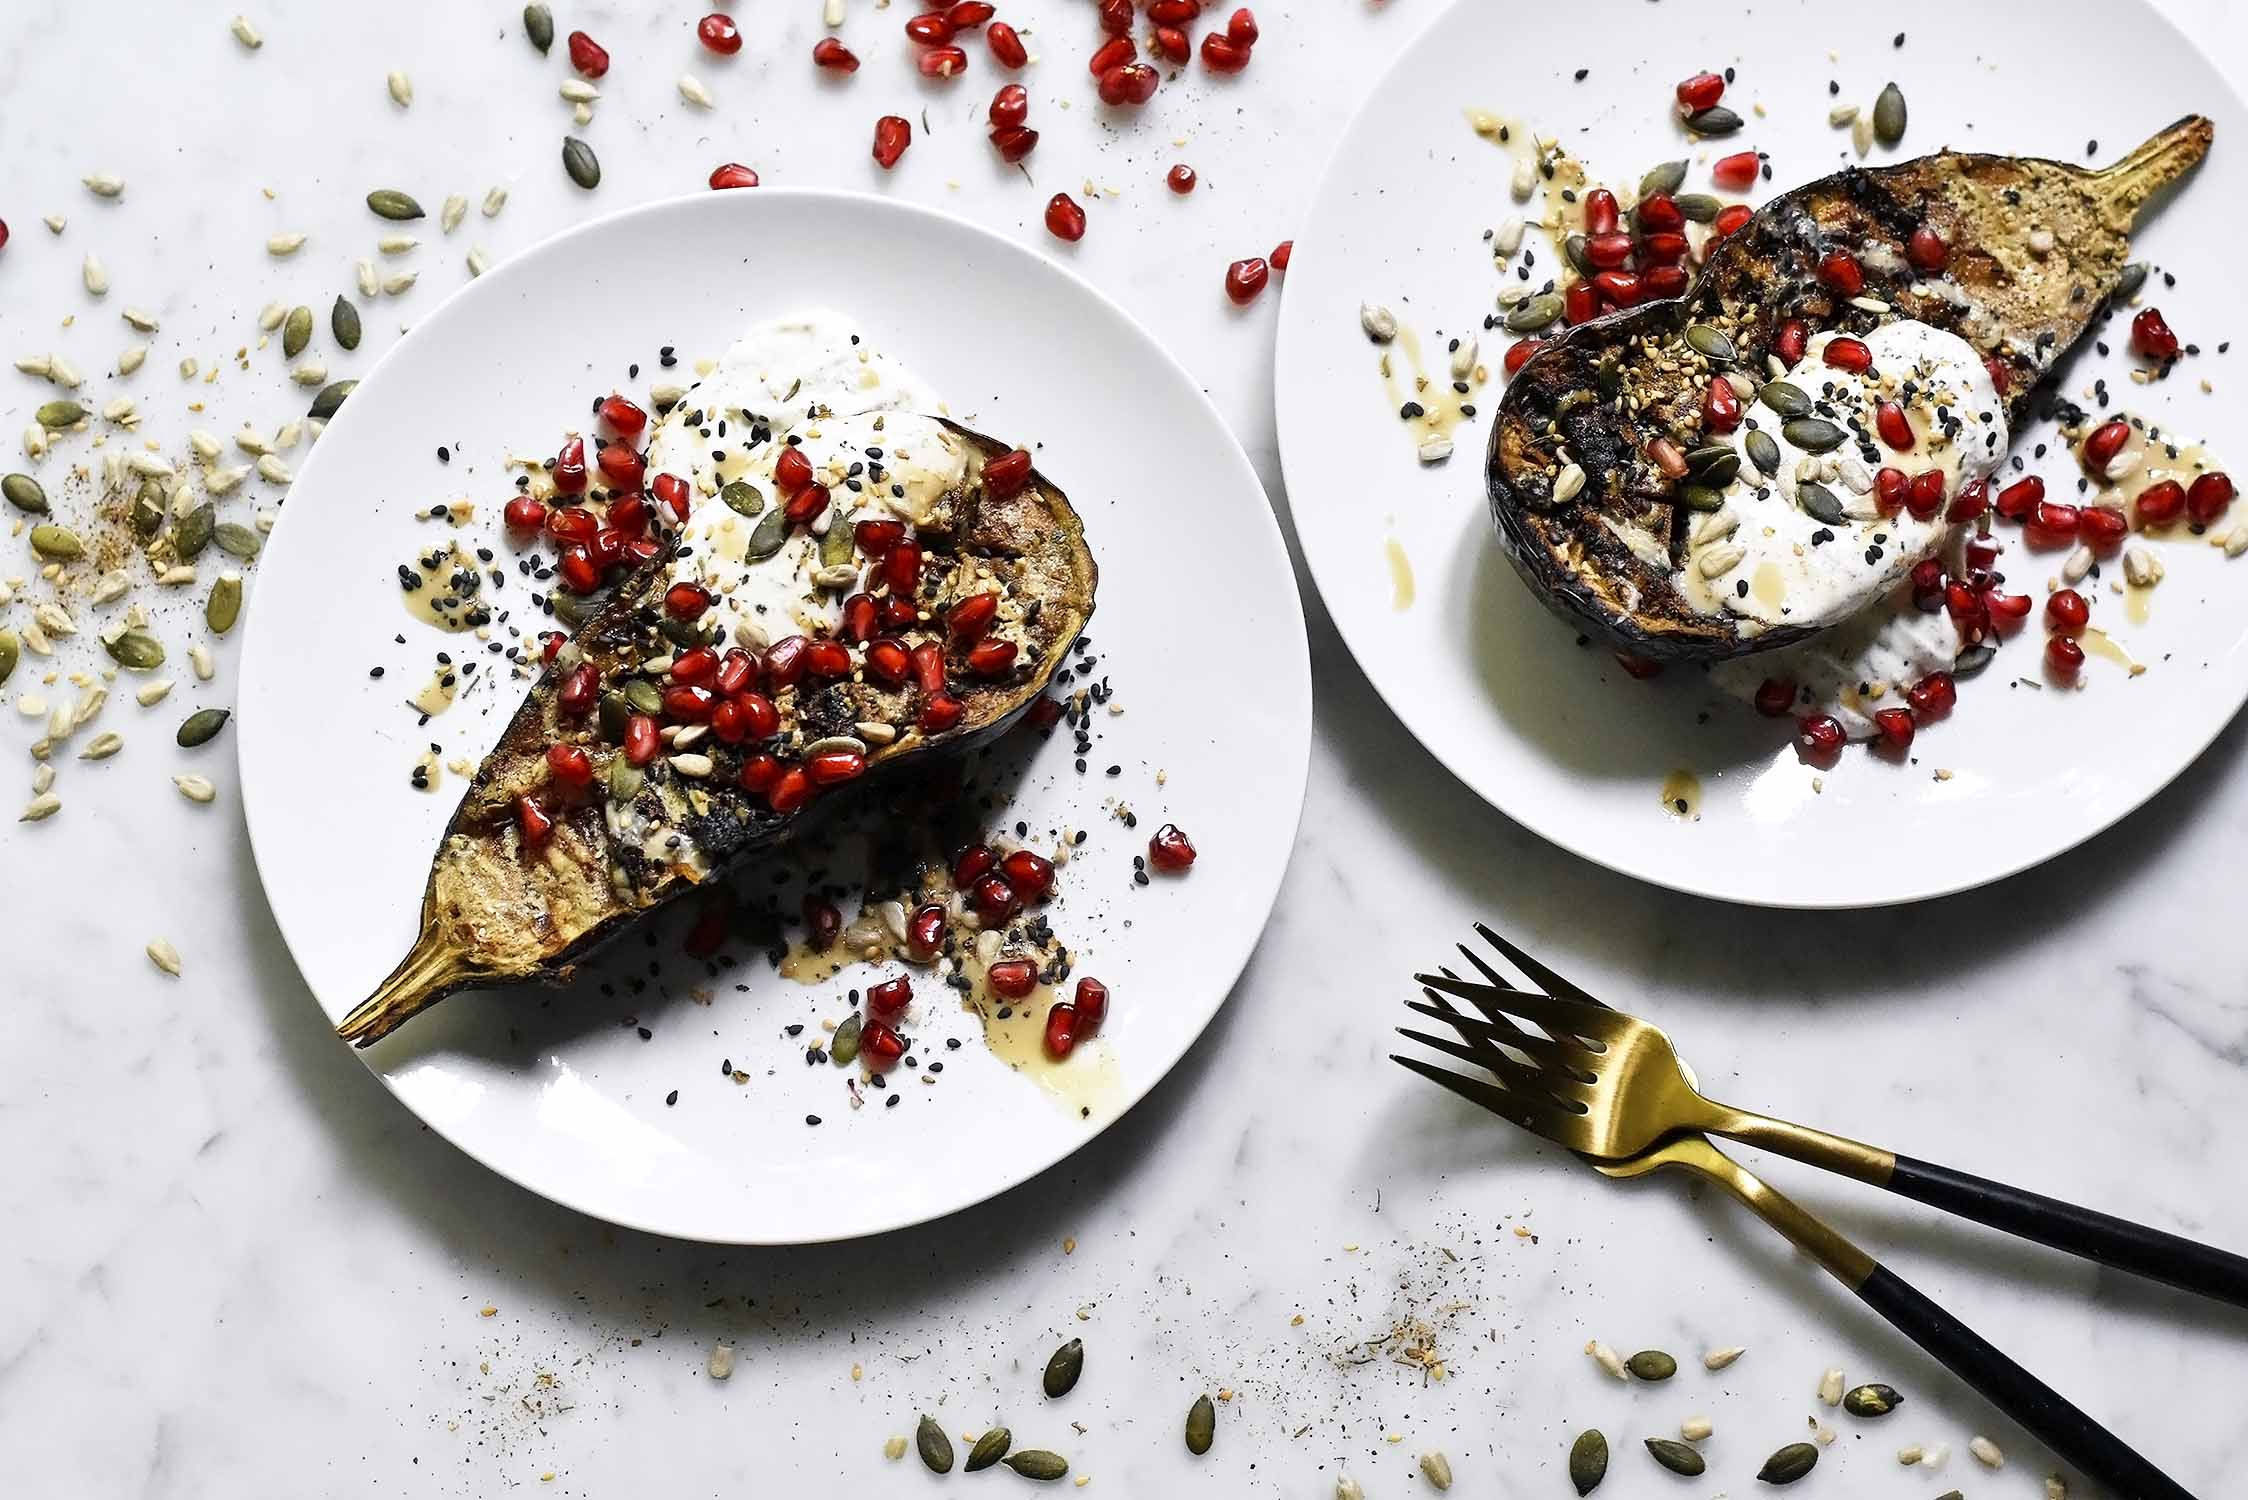 My roasted aubergine with tahini sour cream and pomegranate